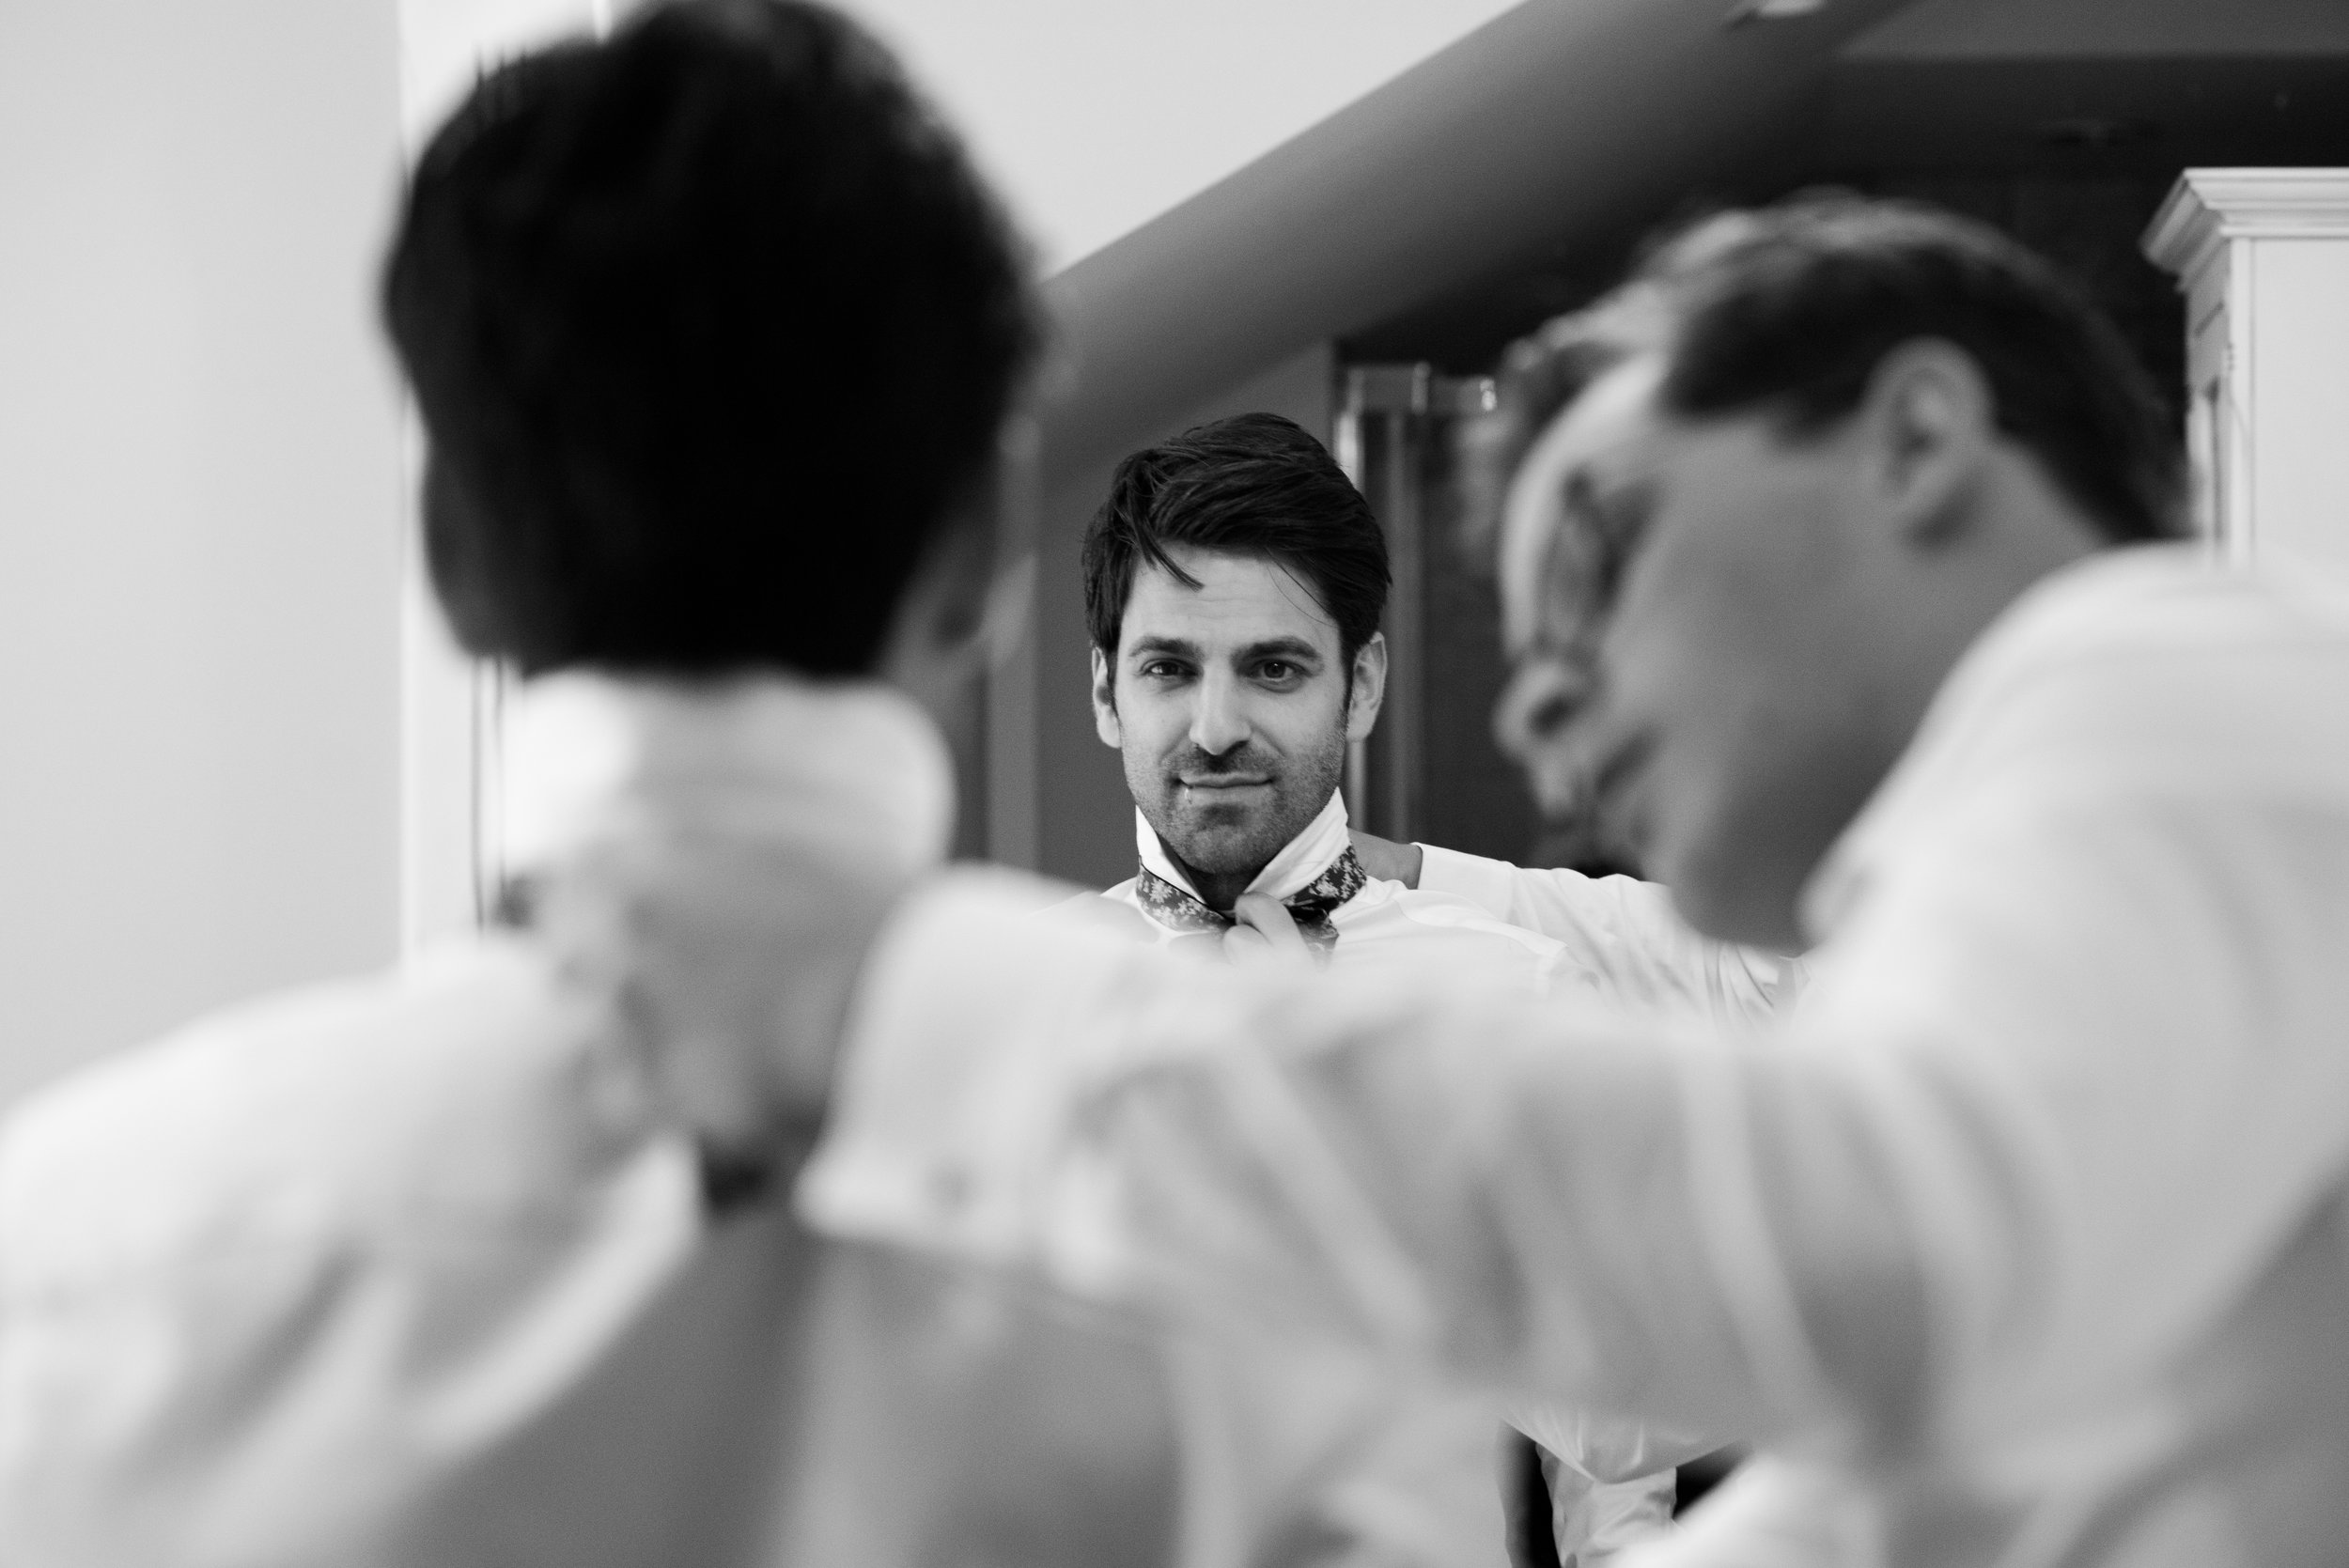 The best man helps the groom with his bowtie // Wedding photos by Karmel Kreative // Plant Based Bride